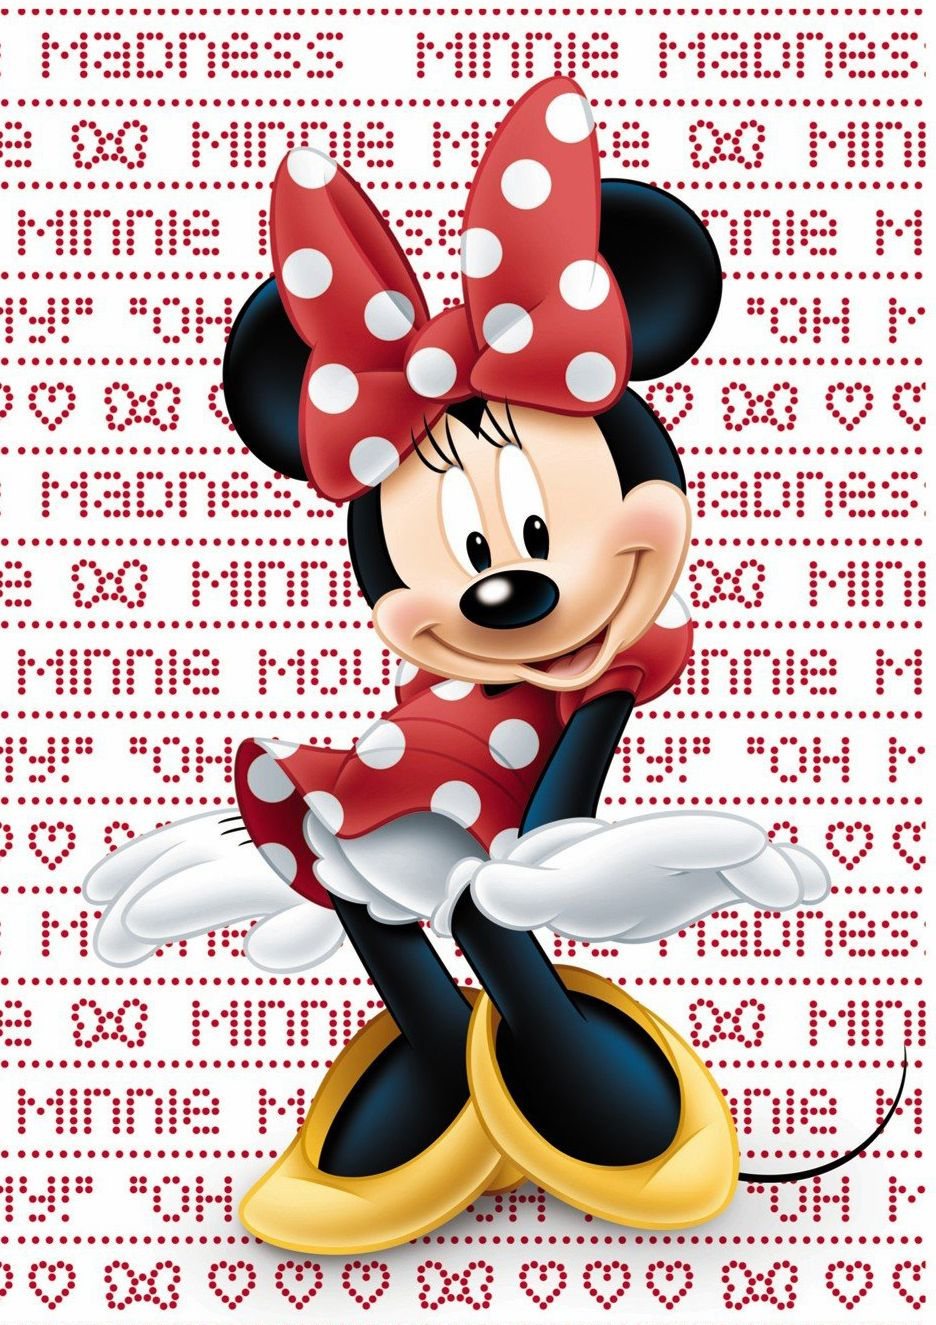 M s de 25 ideas incre bles sobre imagenes de minnie mouse en pinterest imagenes de minie mouse - Minnie mouse wallpaper pinterest ...